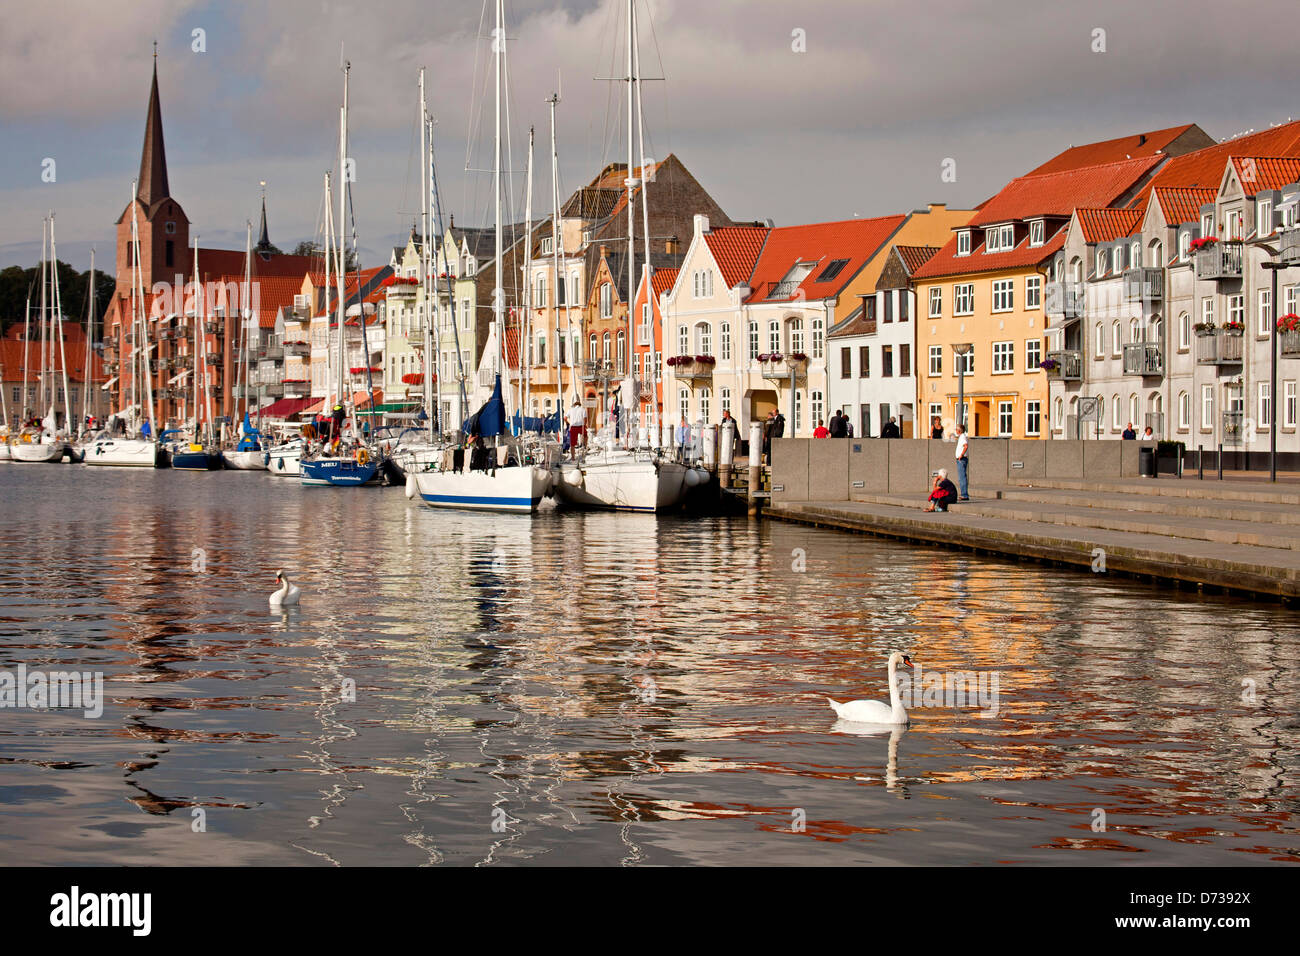 Waterfront and promenade in Sonderborg, Denmark, Europe Stock Photo, Royalty Free Image ...